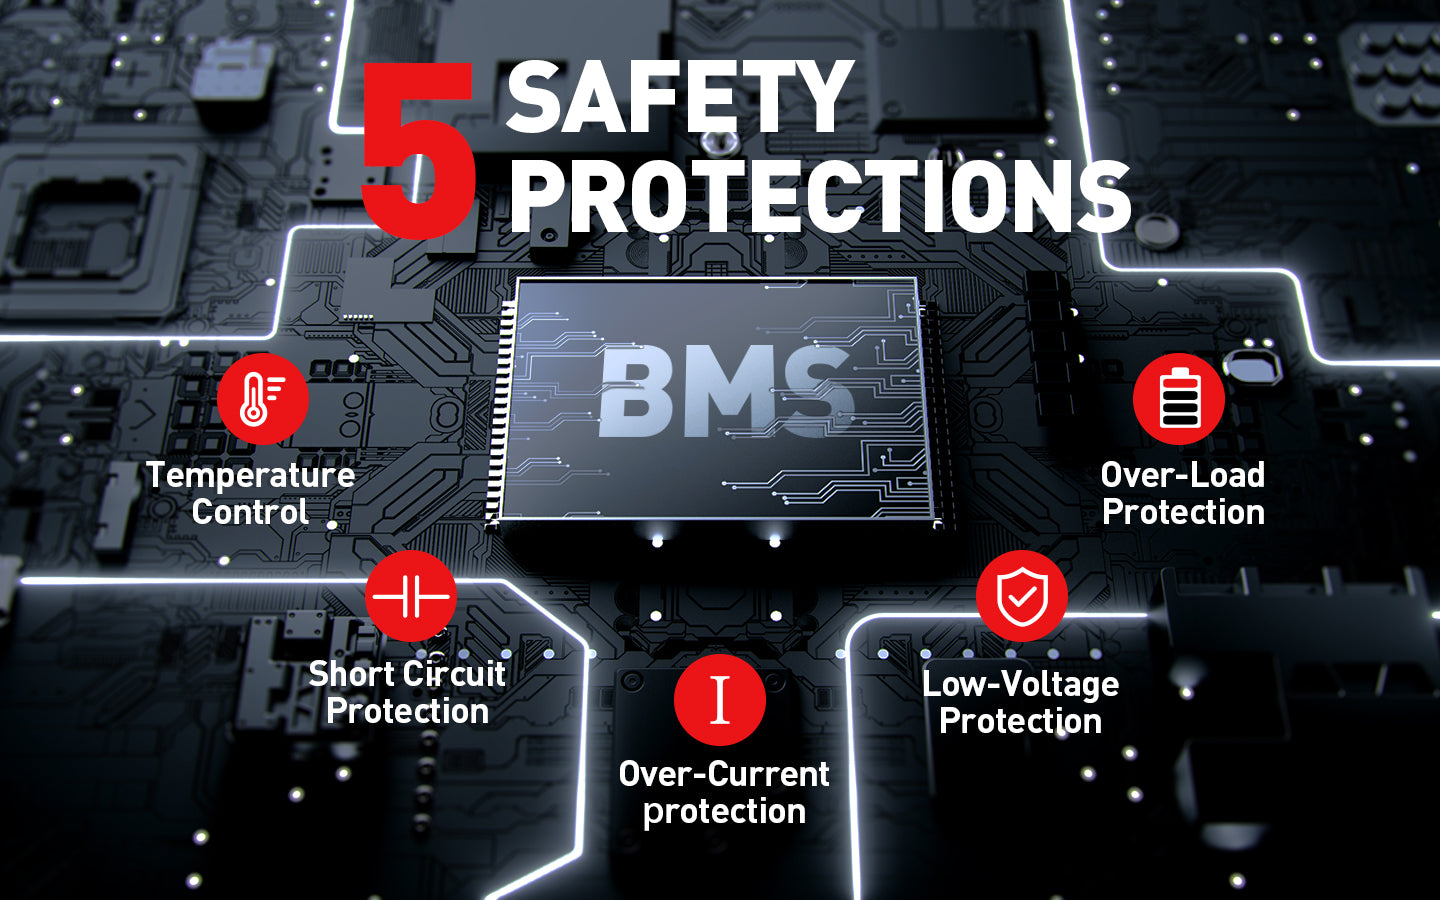 safety protections low-voltage over-current